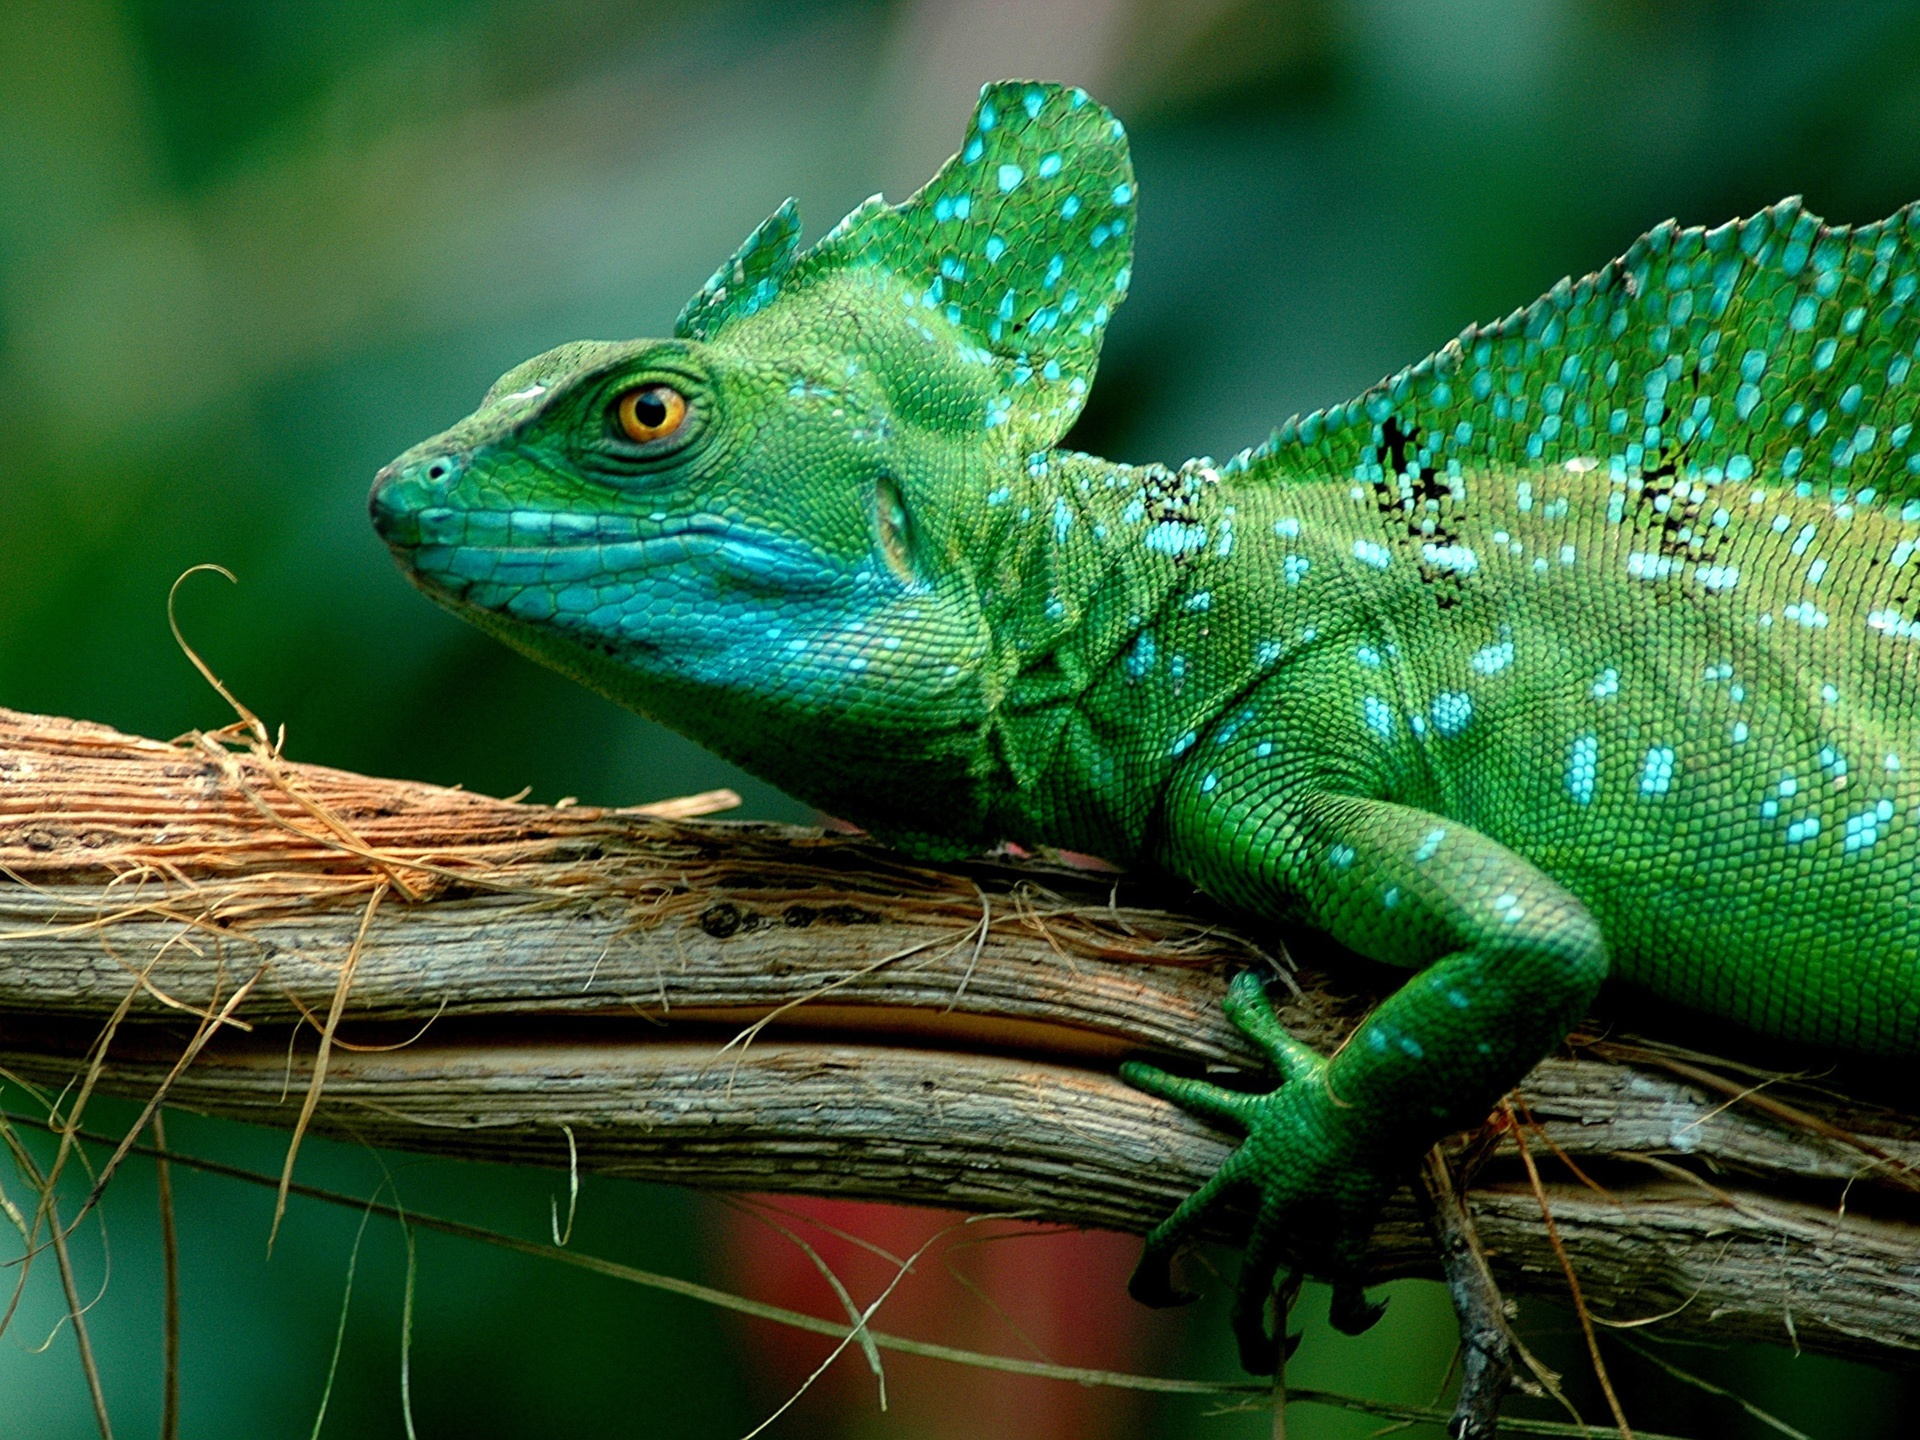 Green lizard, chameleon wallpaper 1920x1440.